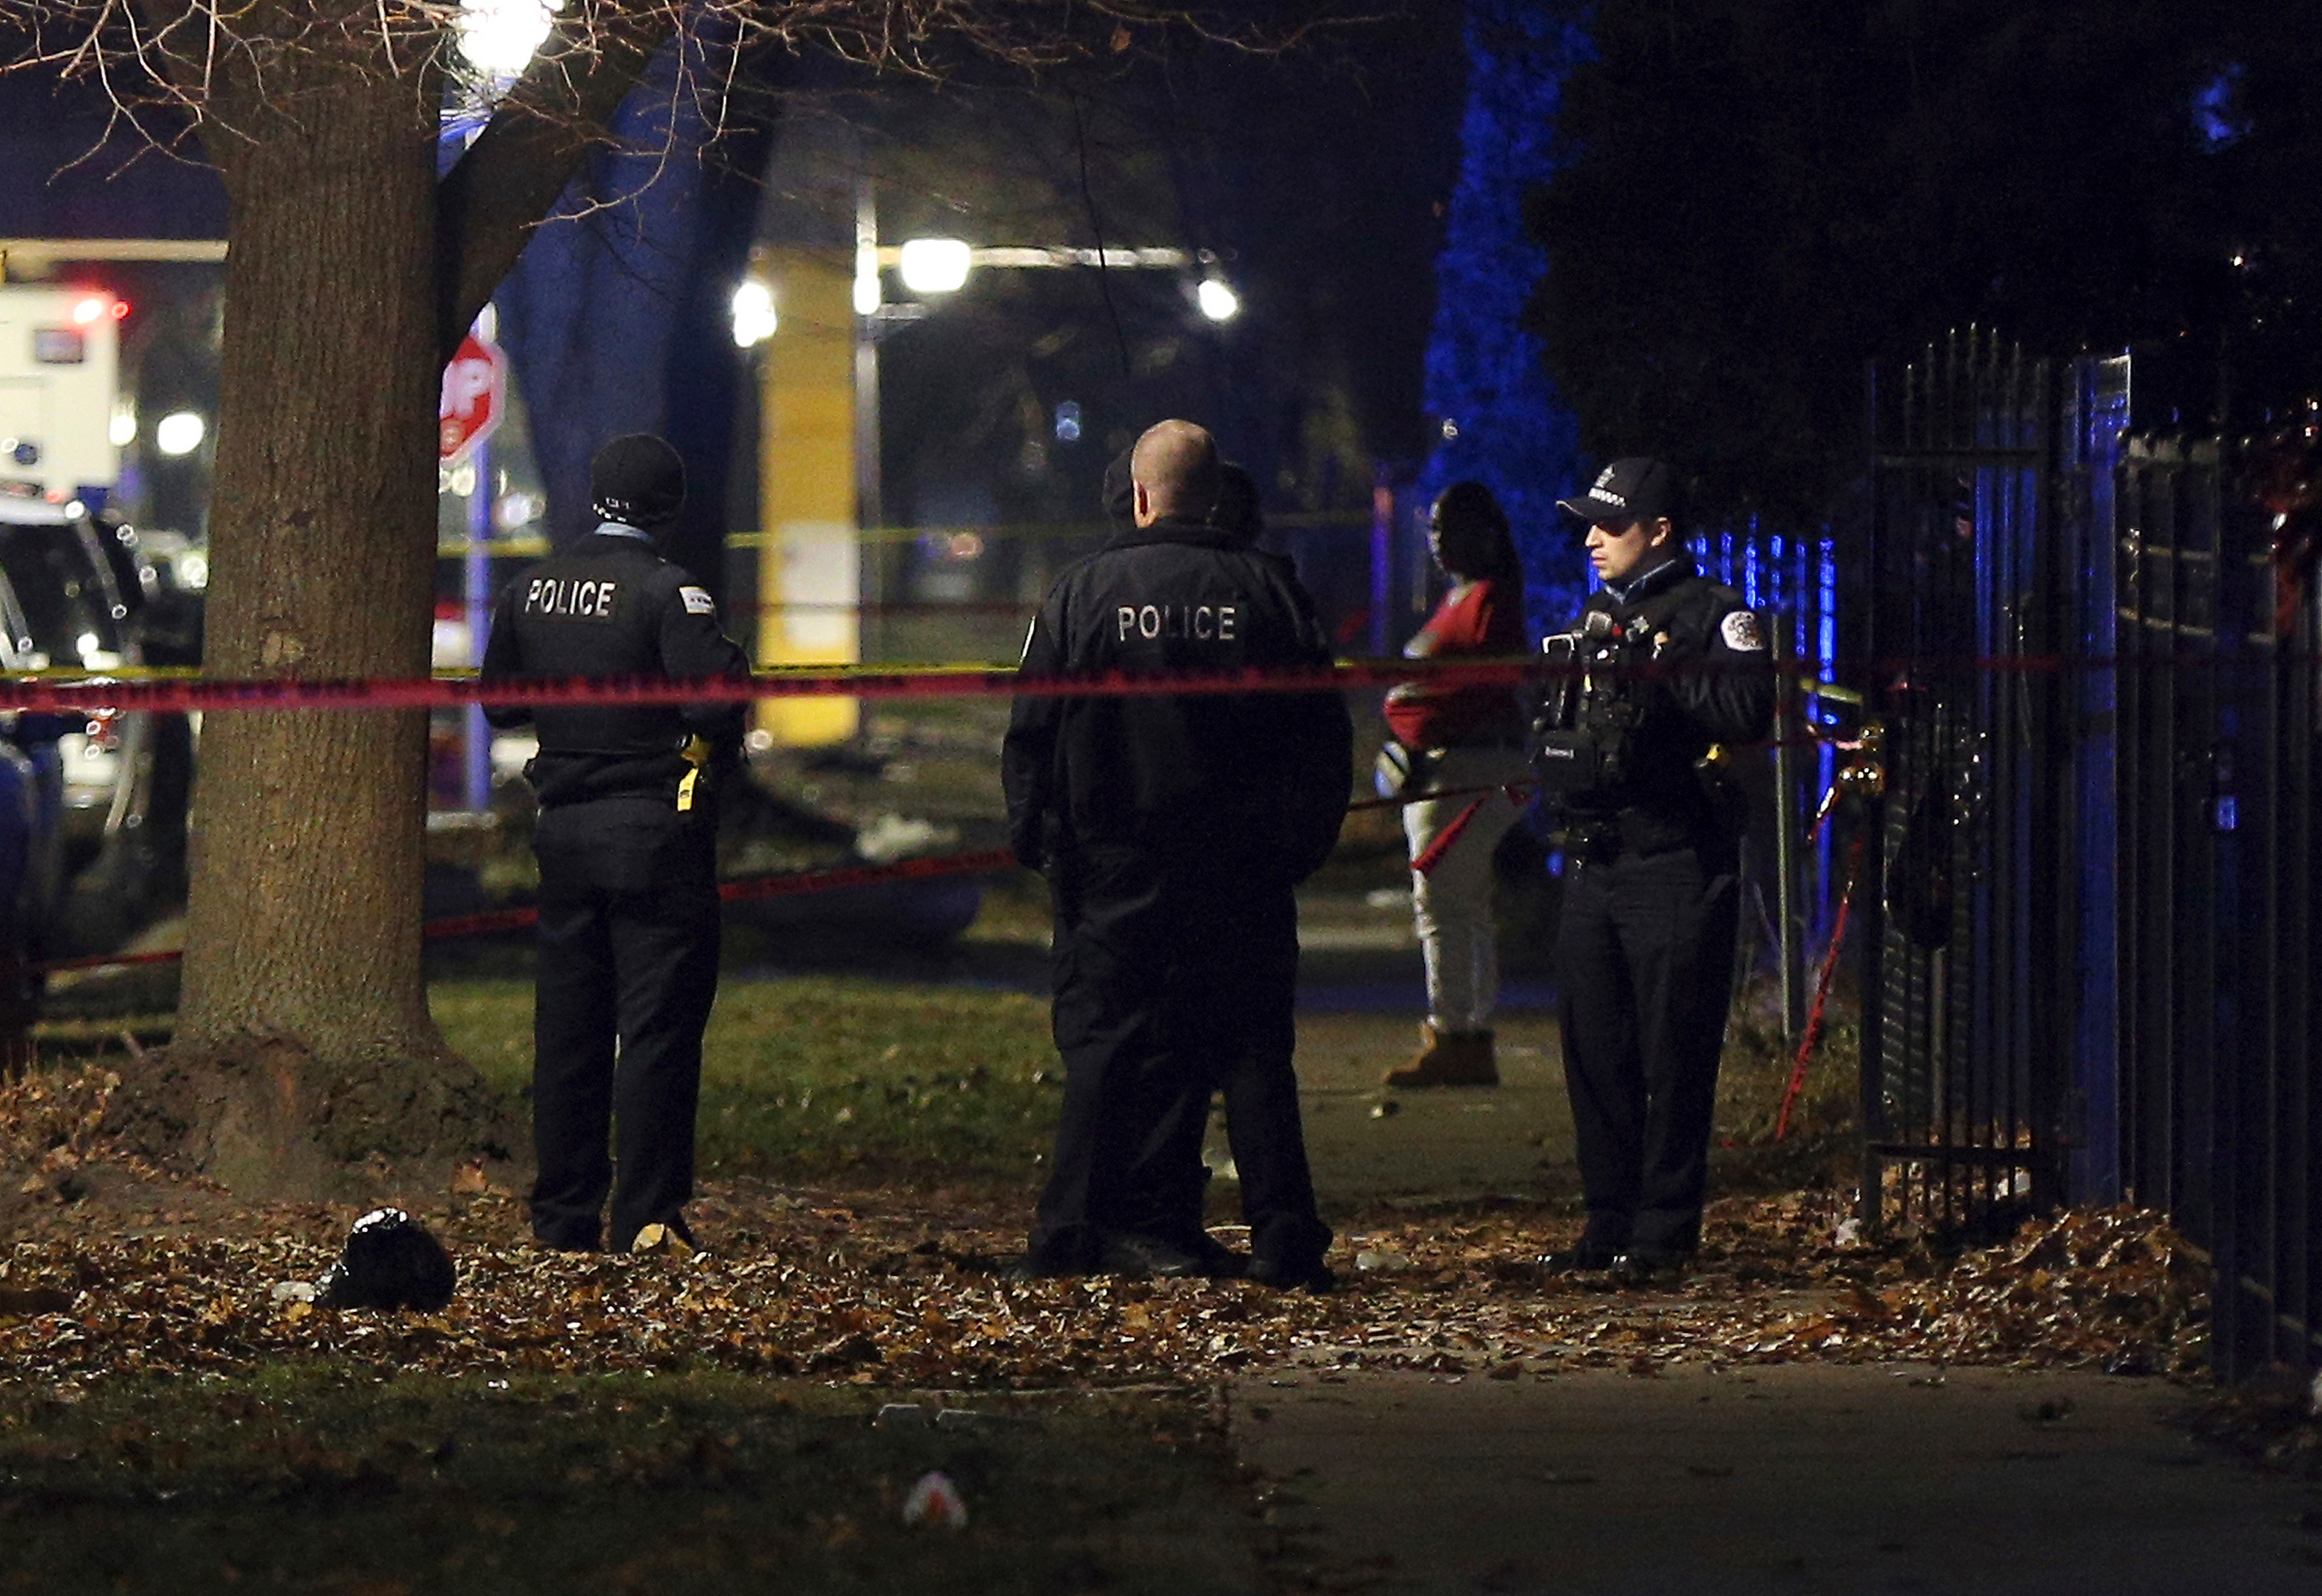 Police officers guard a crime scene in the 5700 block of S. May Street in Chicago after a shooting on Dec. 22, 2019.